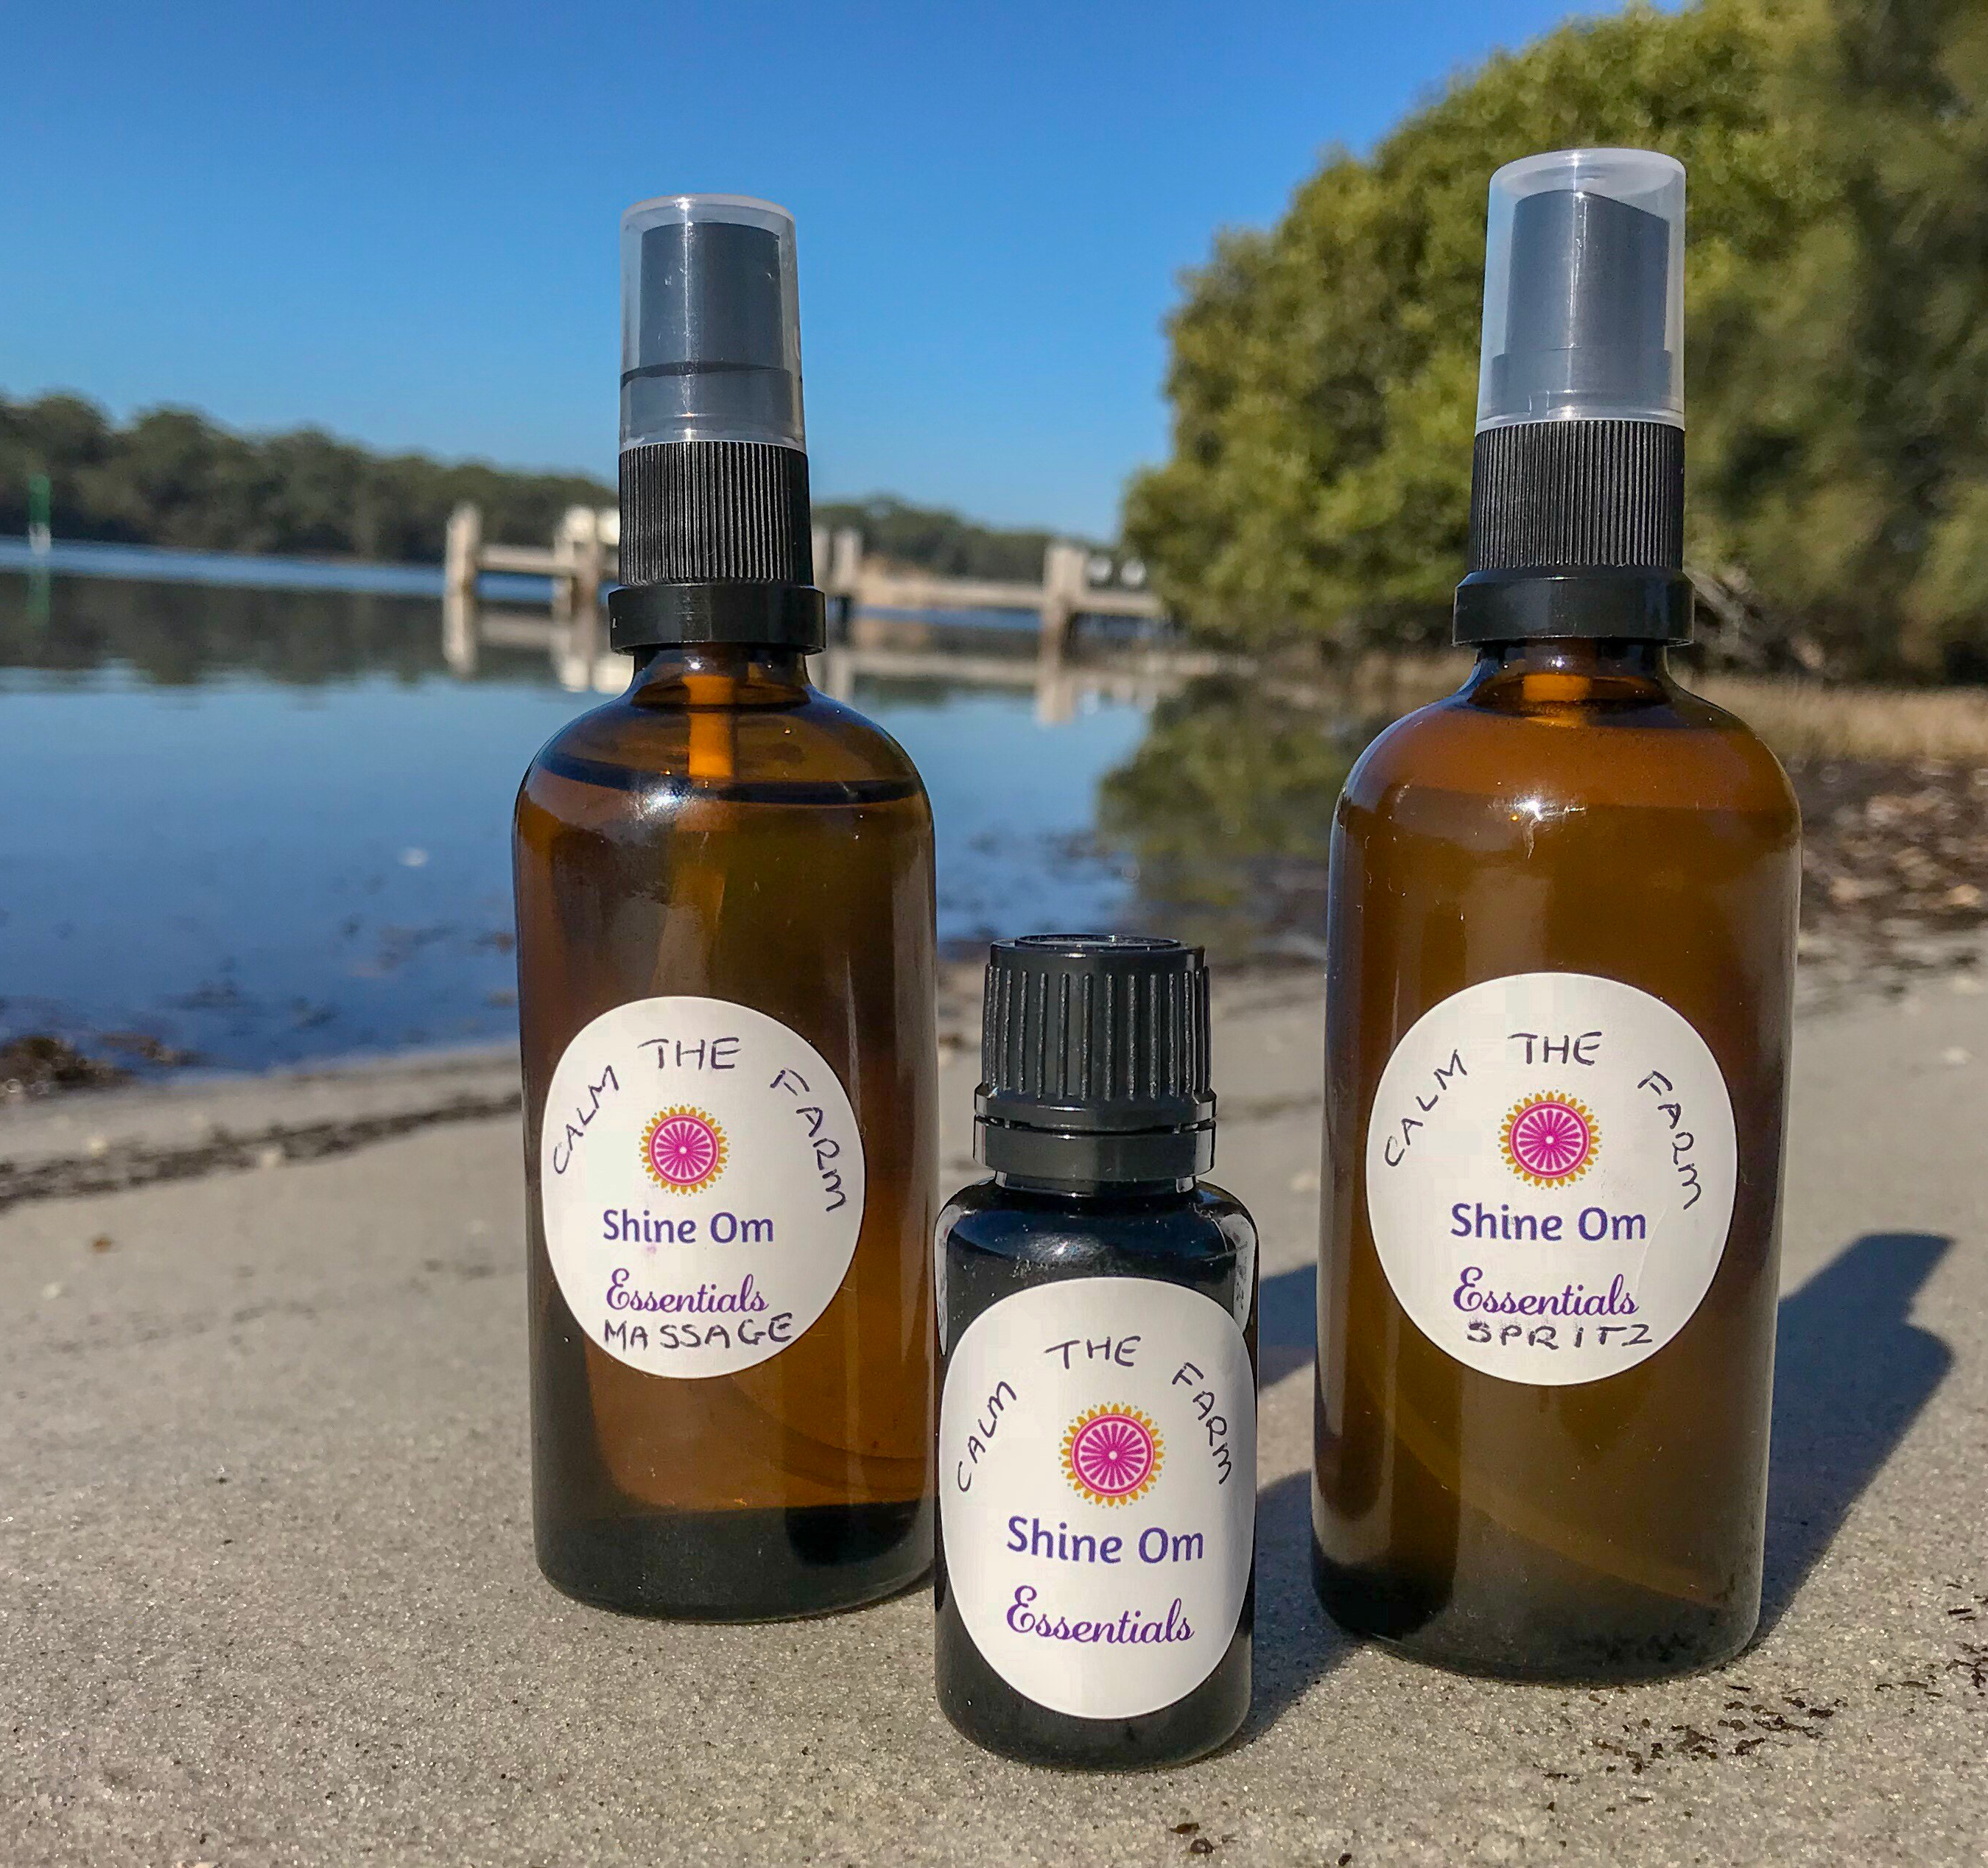 Interested in purchasing your own Shine Om Essentials? | Head on over to our website for all your self care and essential oil needs.